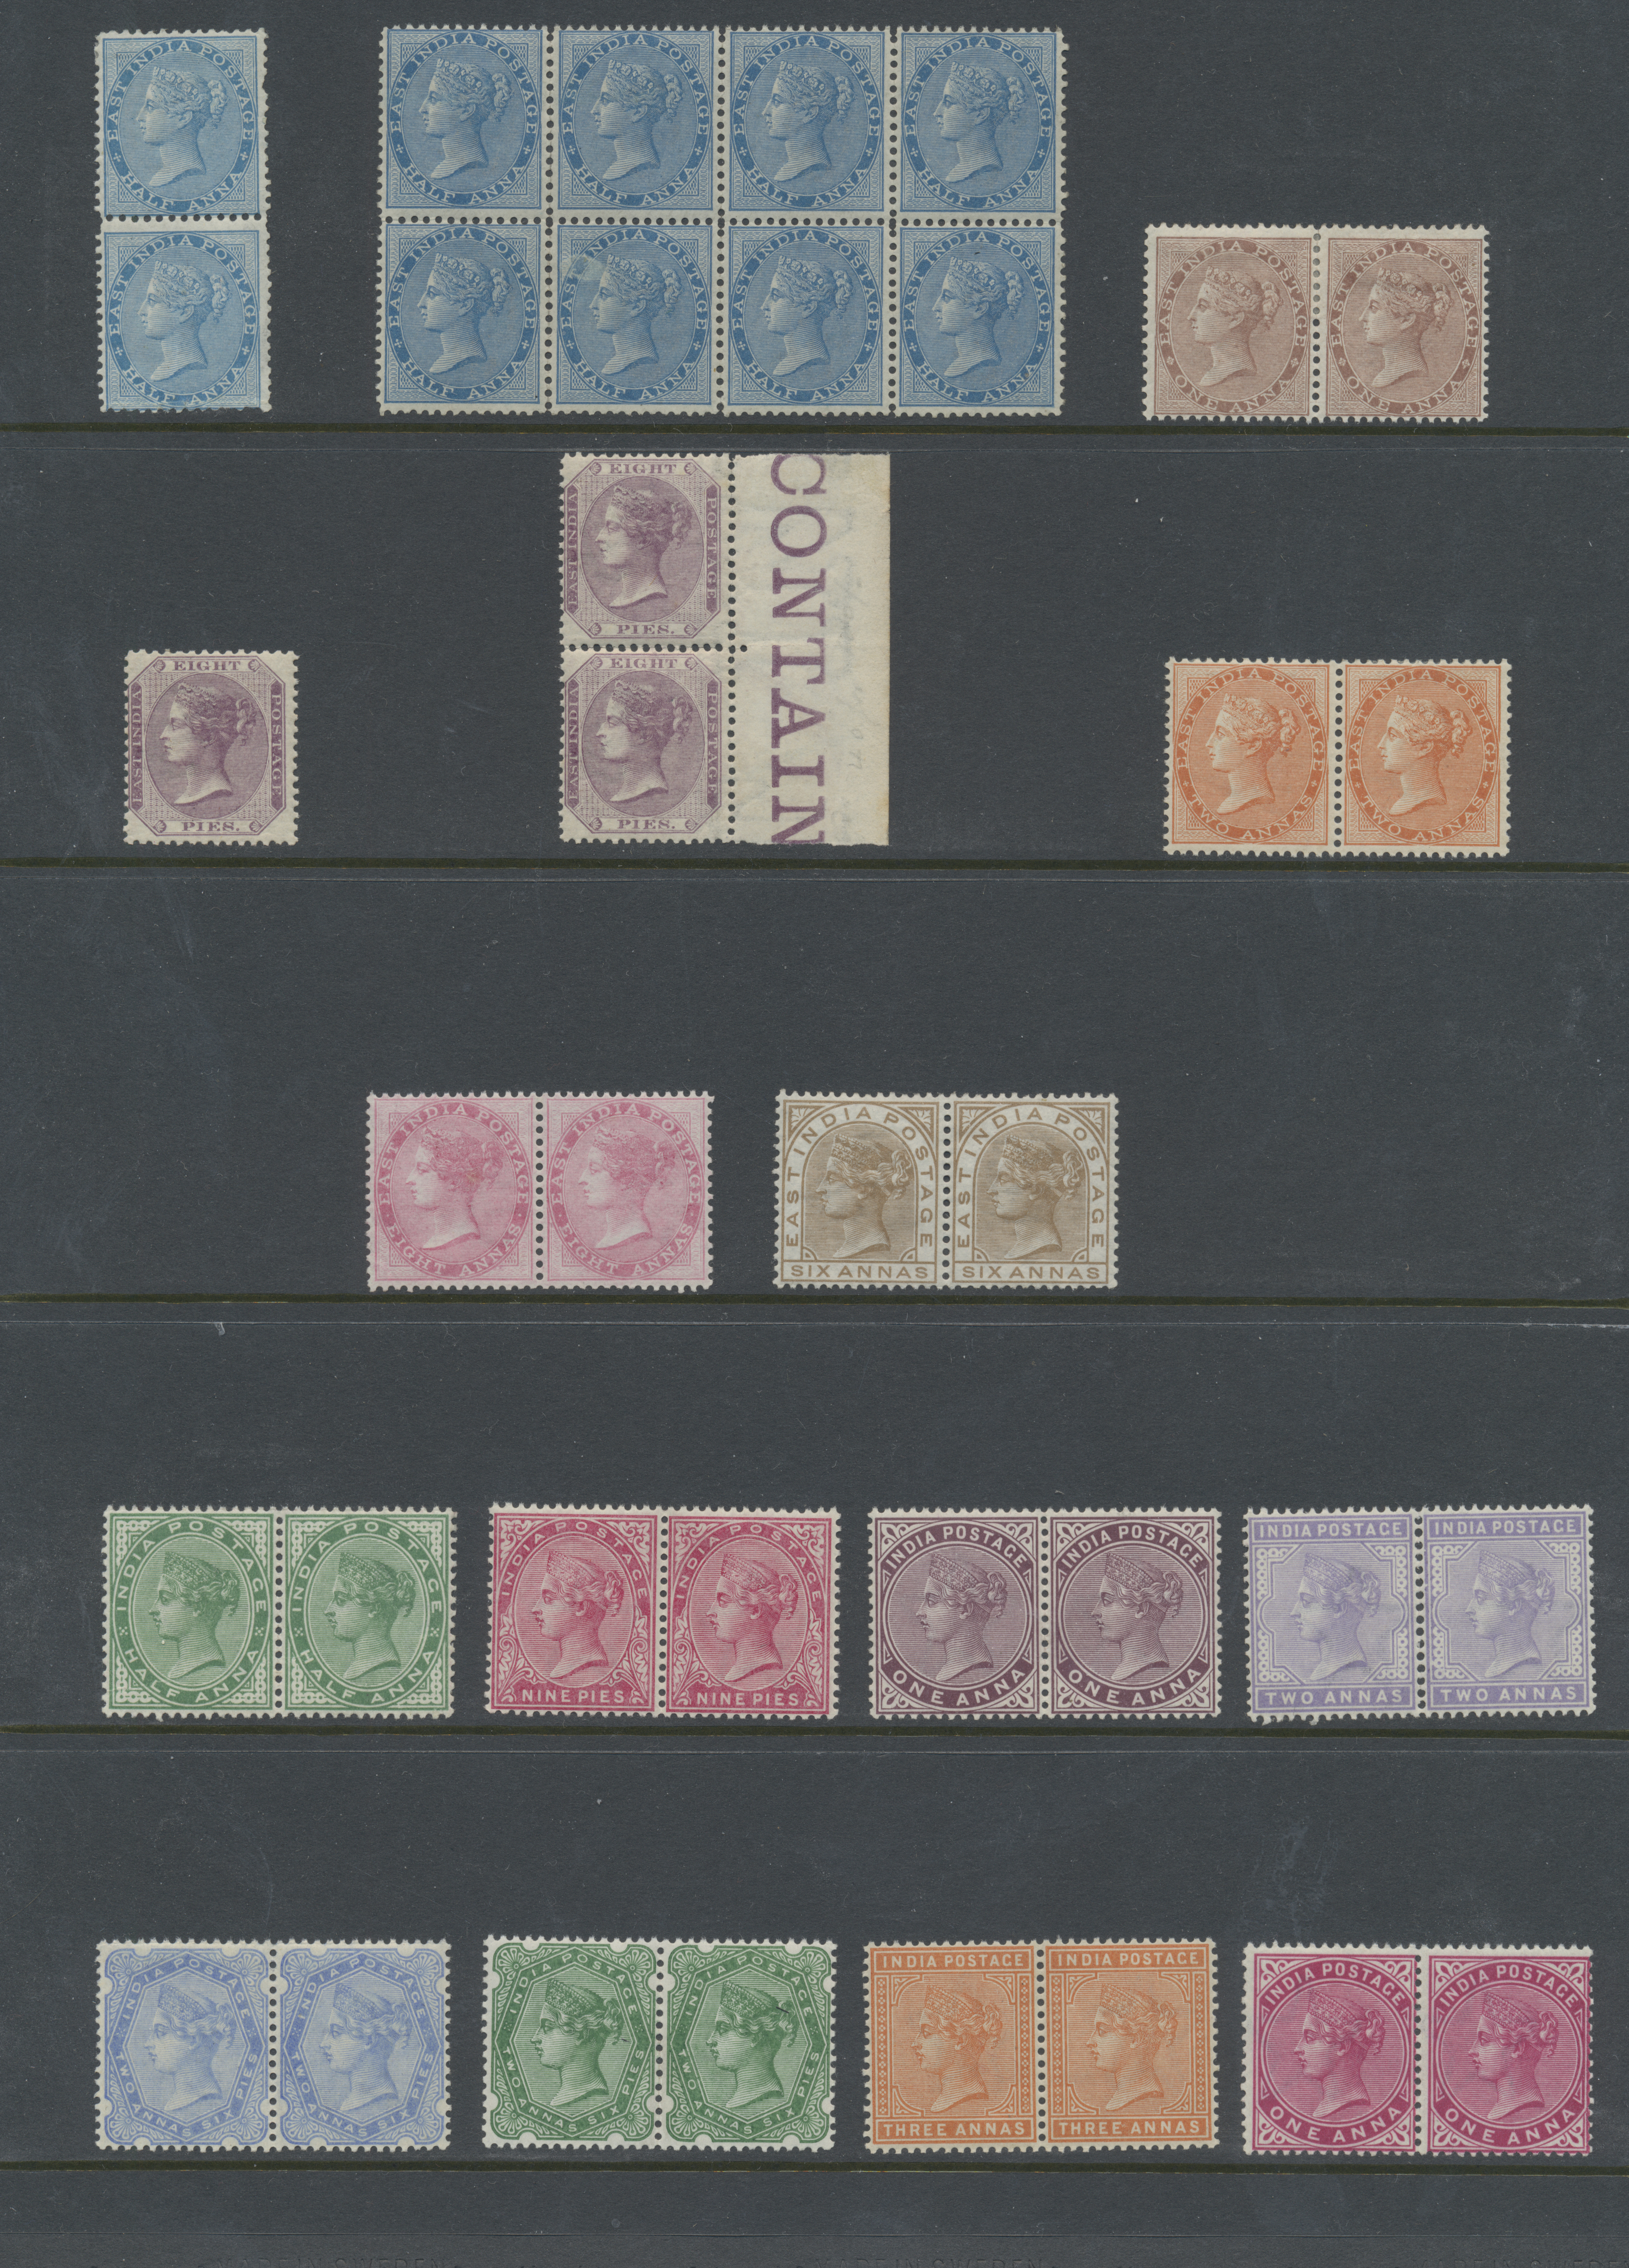 Lot 19178 - indien  -  Auktionshaus Christoph Gärtner GmbH & Co. KG Sale #47 Collections: Overseas, Thematics, Europe